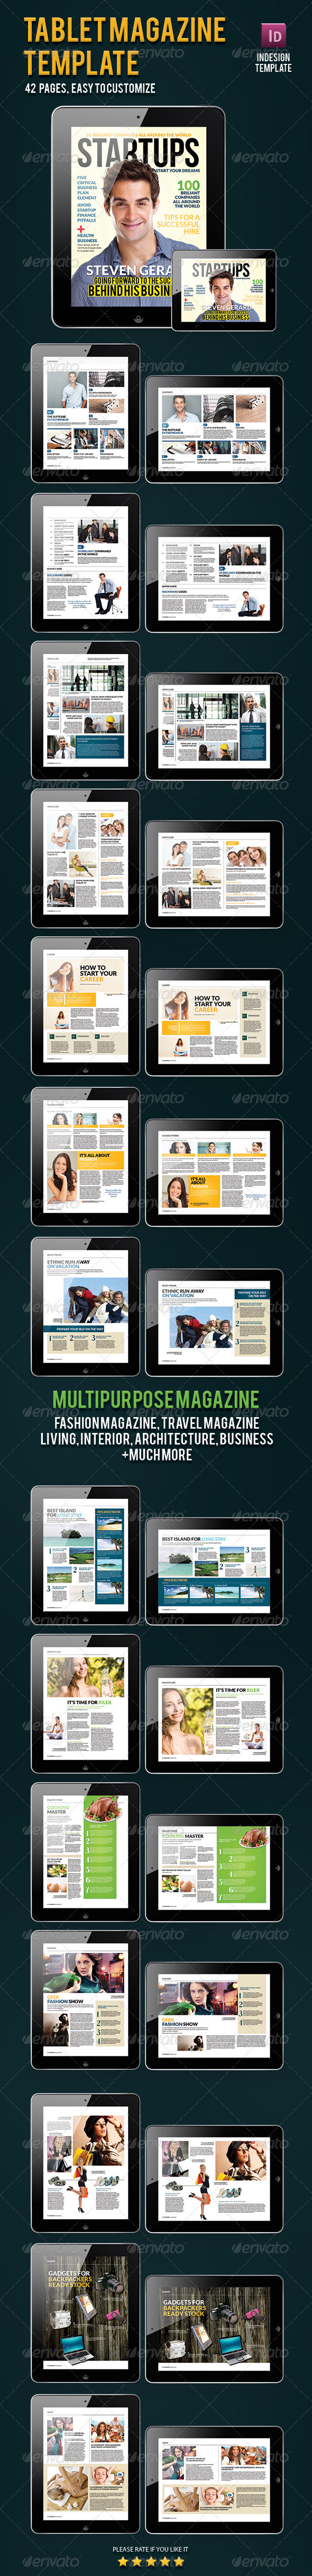 GraphicRiver Magazine Template for Tablet 3552166